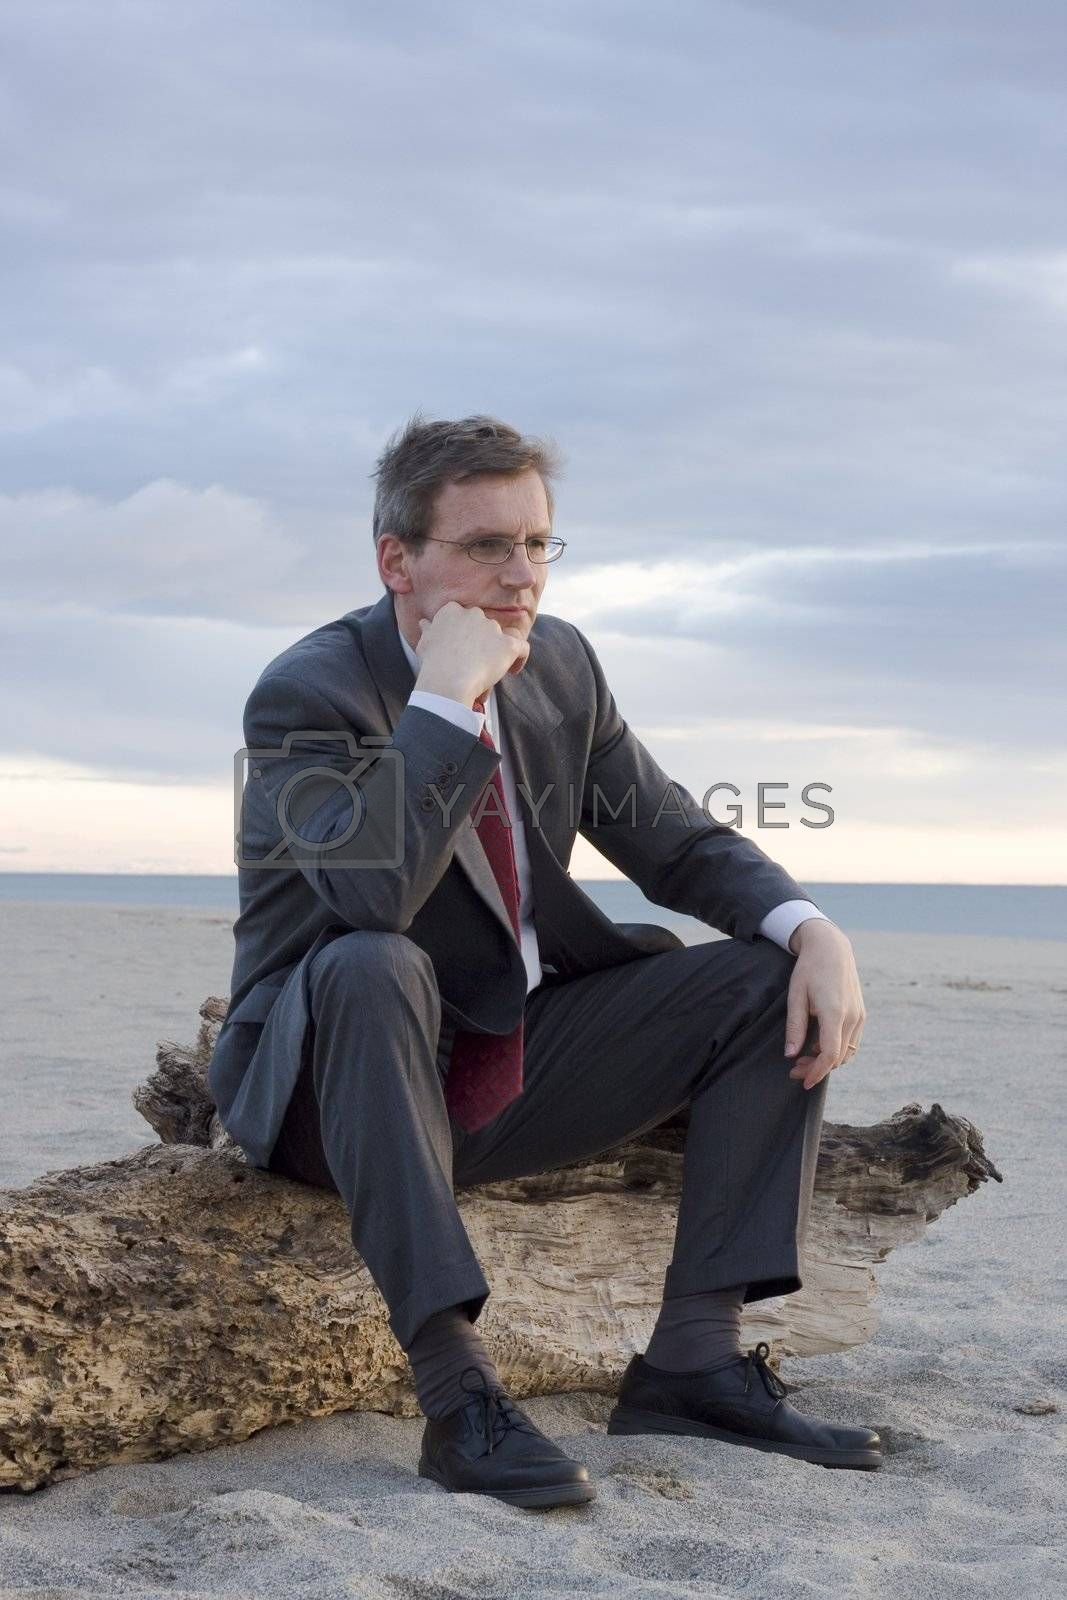 Pensive businessman sitting on a tree trunk on a beach